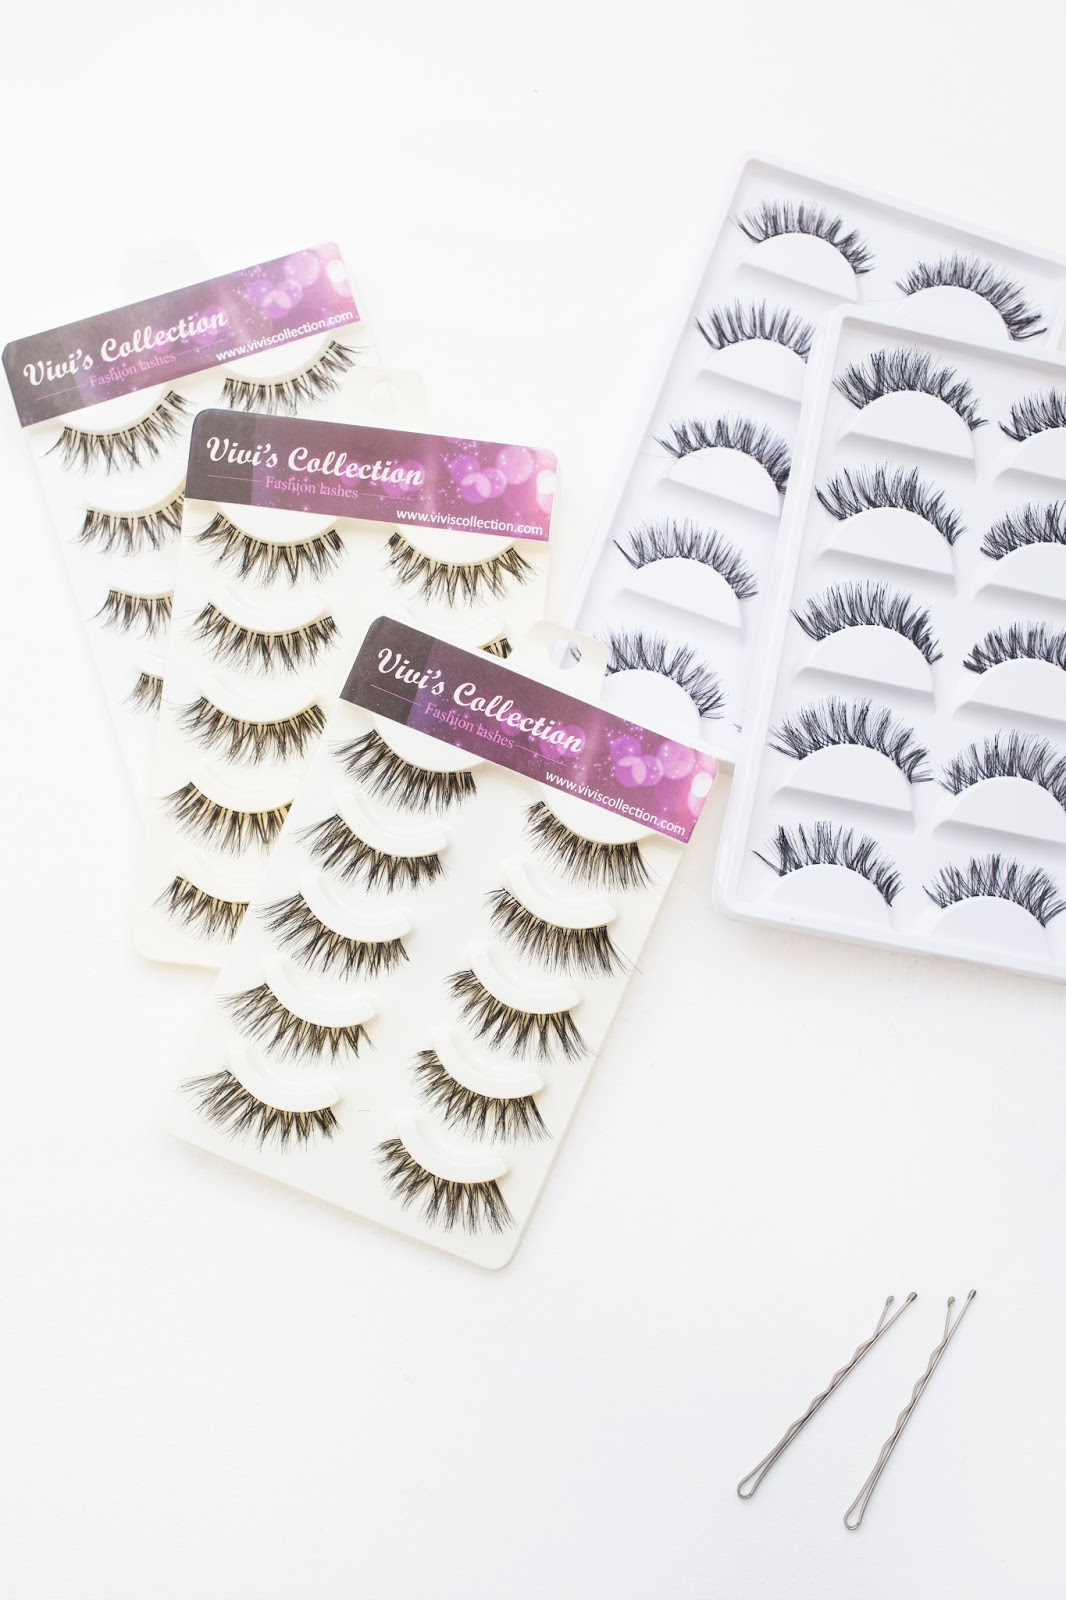 Some of my Favourite False Eyelashes + Where I Buy Them